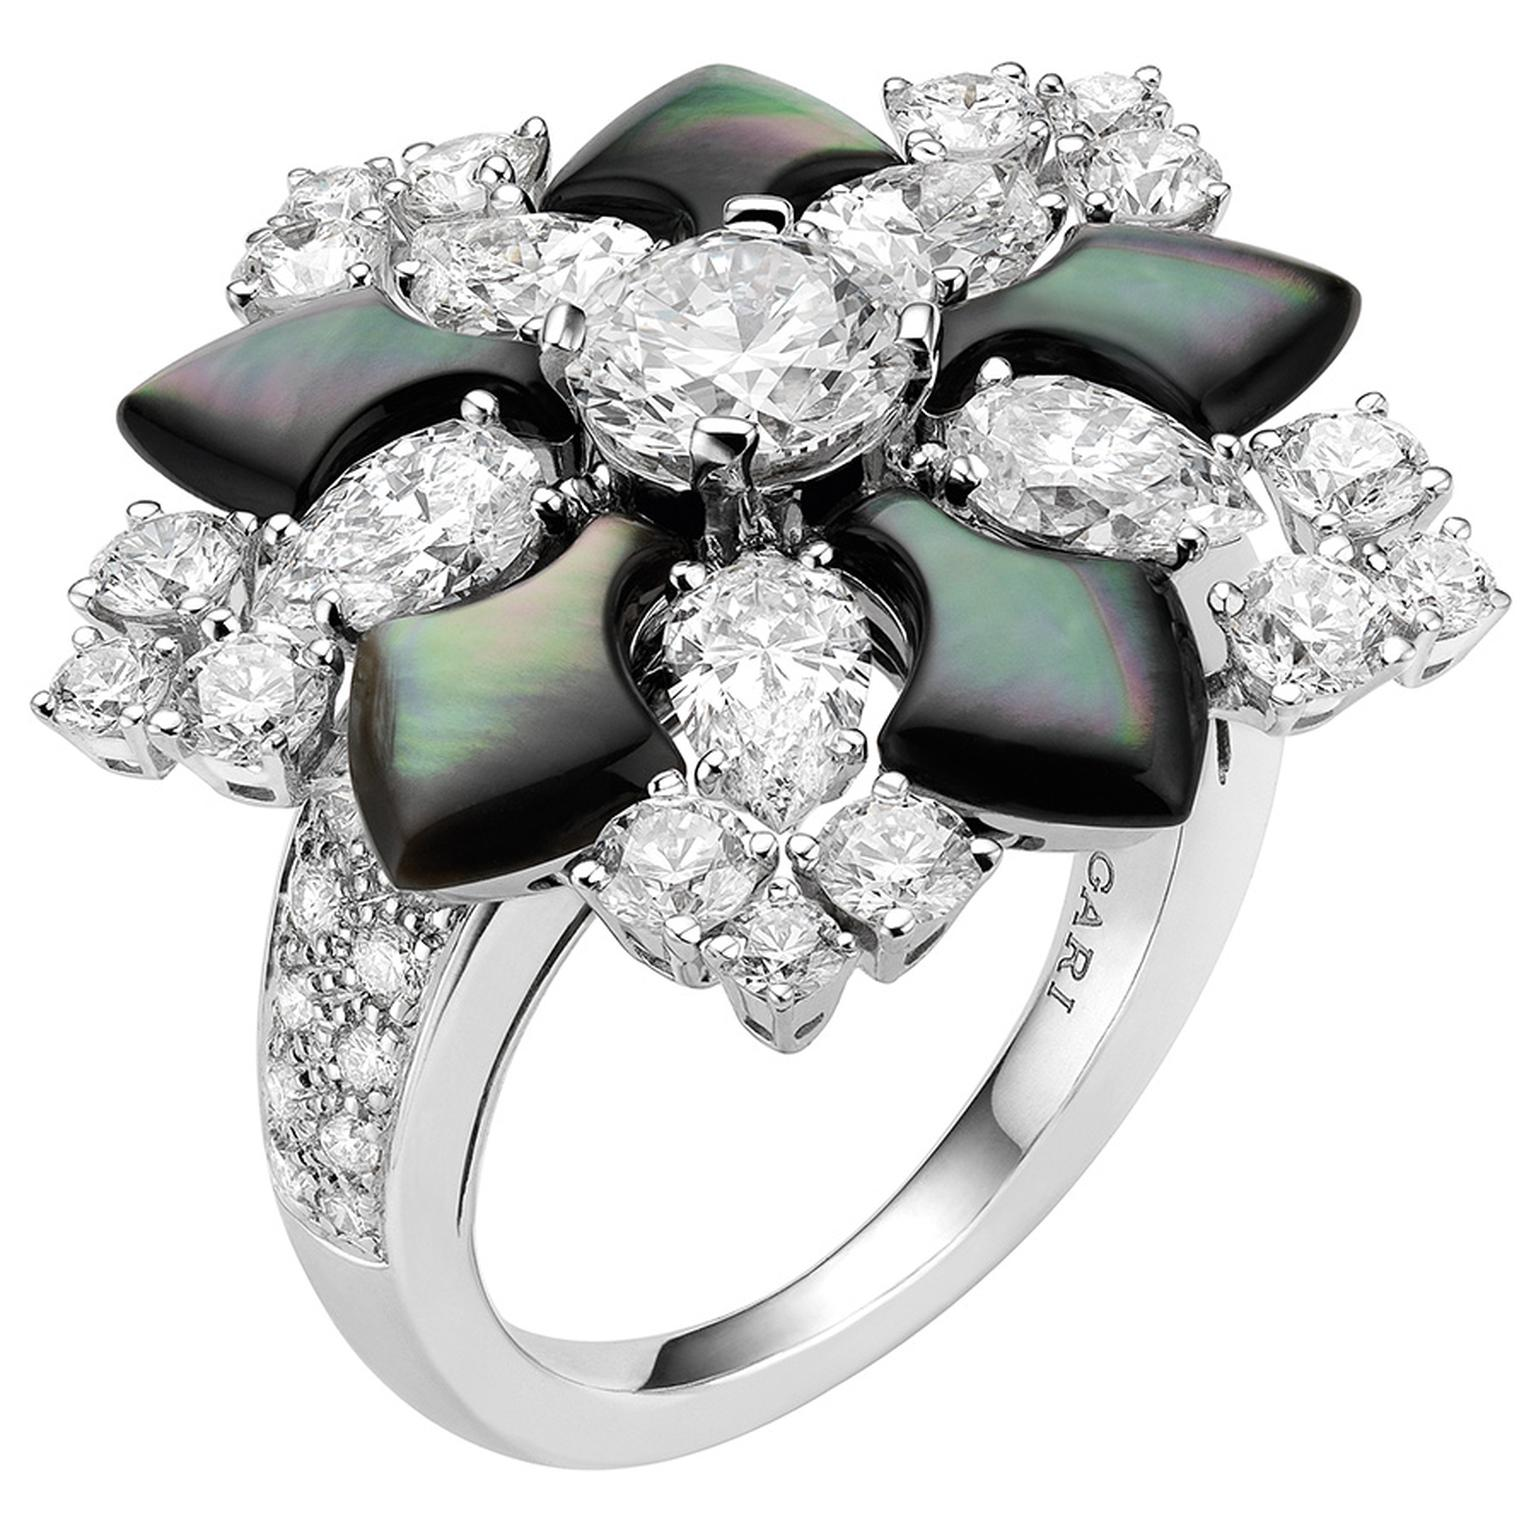 Bulgari-Eden-ring-black-2.jpg